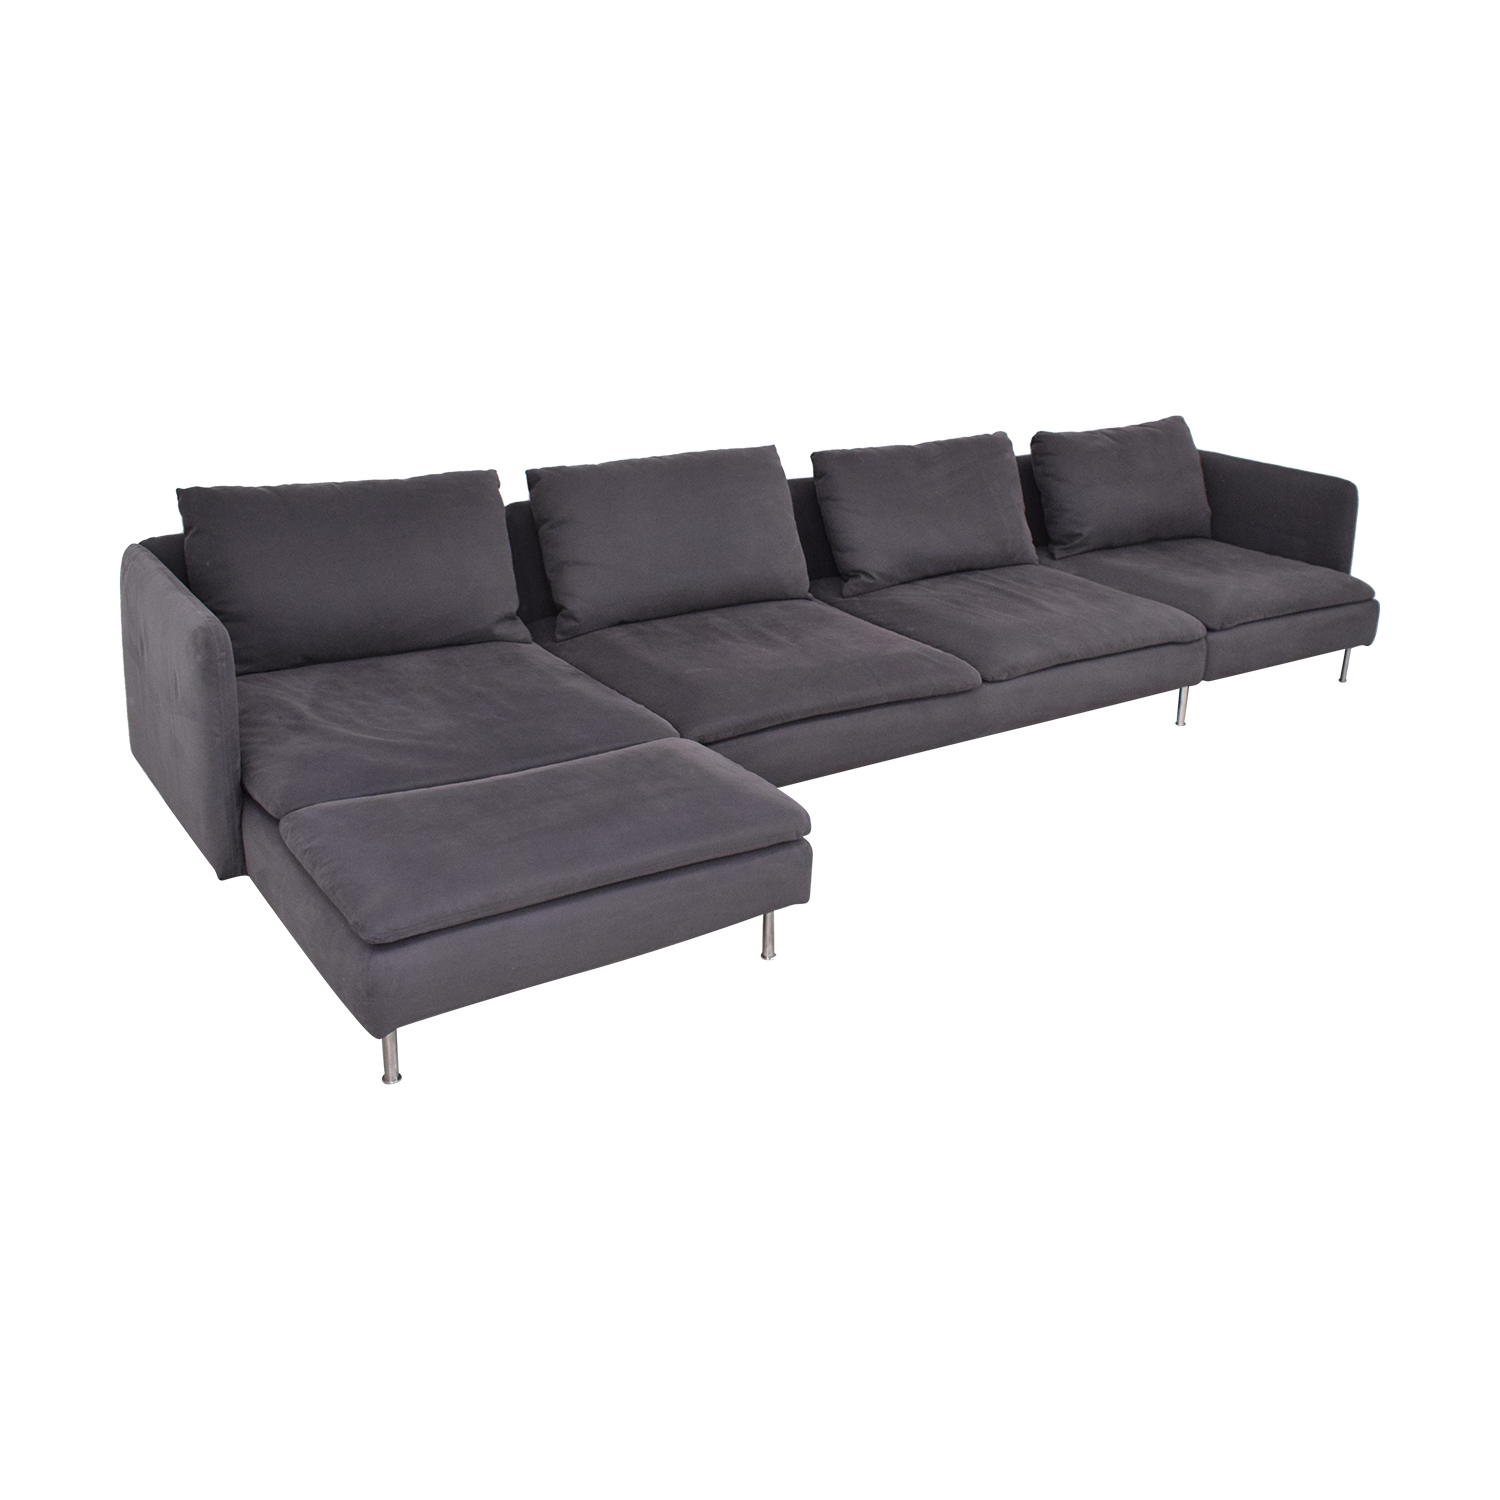 Surprising 28 Off Ikea Ikea Chaise Sectional Sofa Sofas Inzonedesignstudio Interior Chair Design Inzonedesignstudiocom